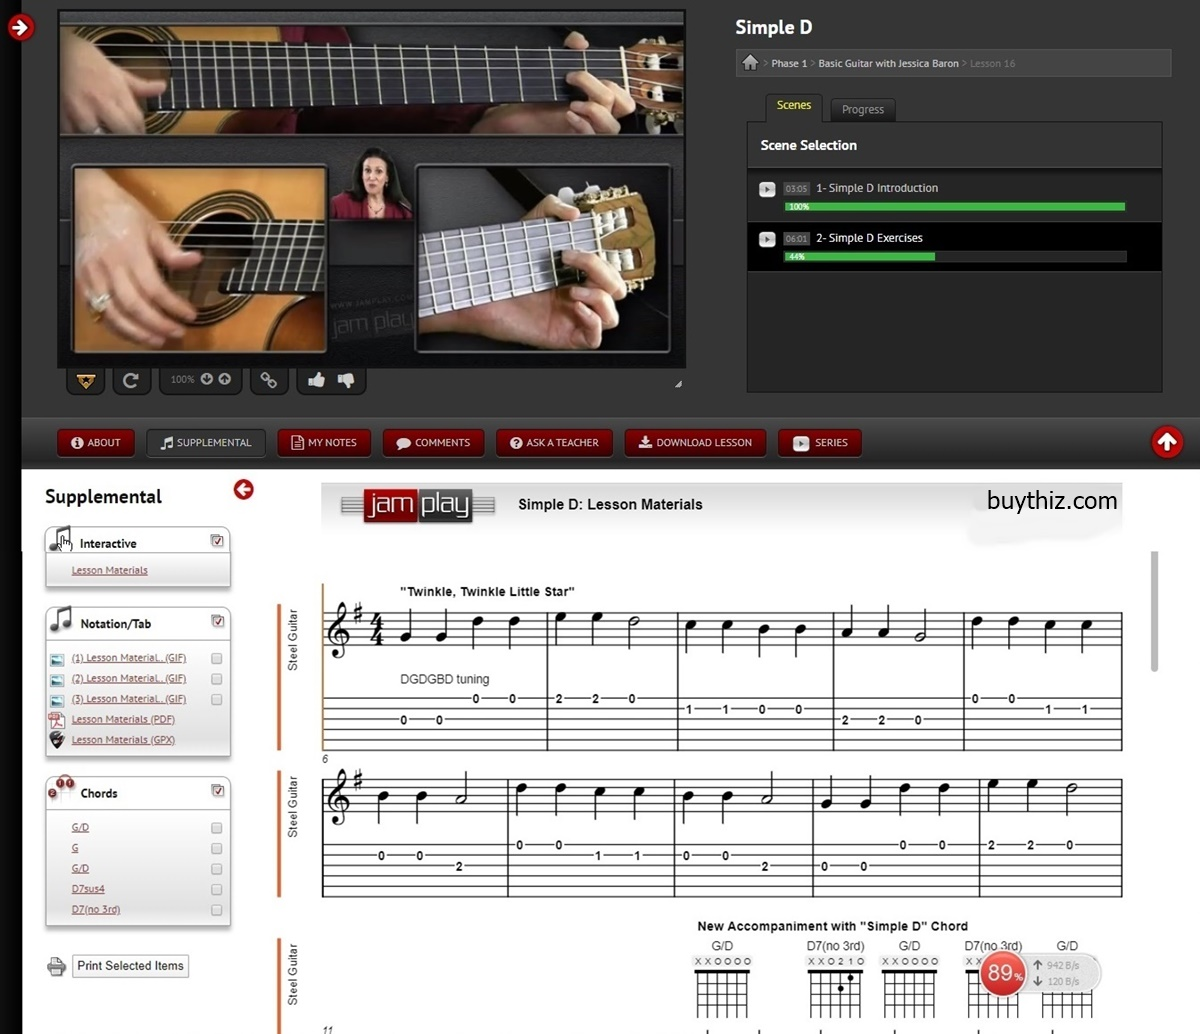 JamPlay review, Jessica baron lesson